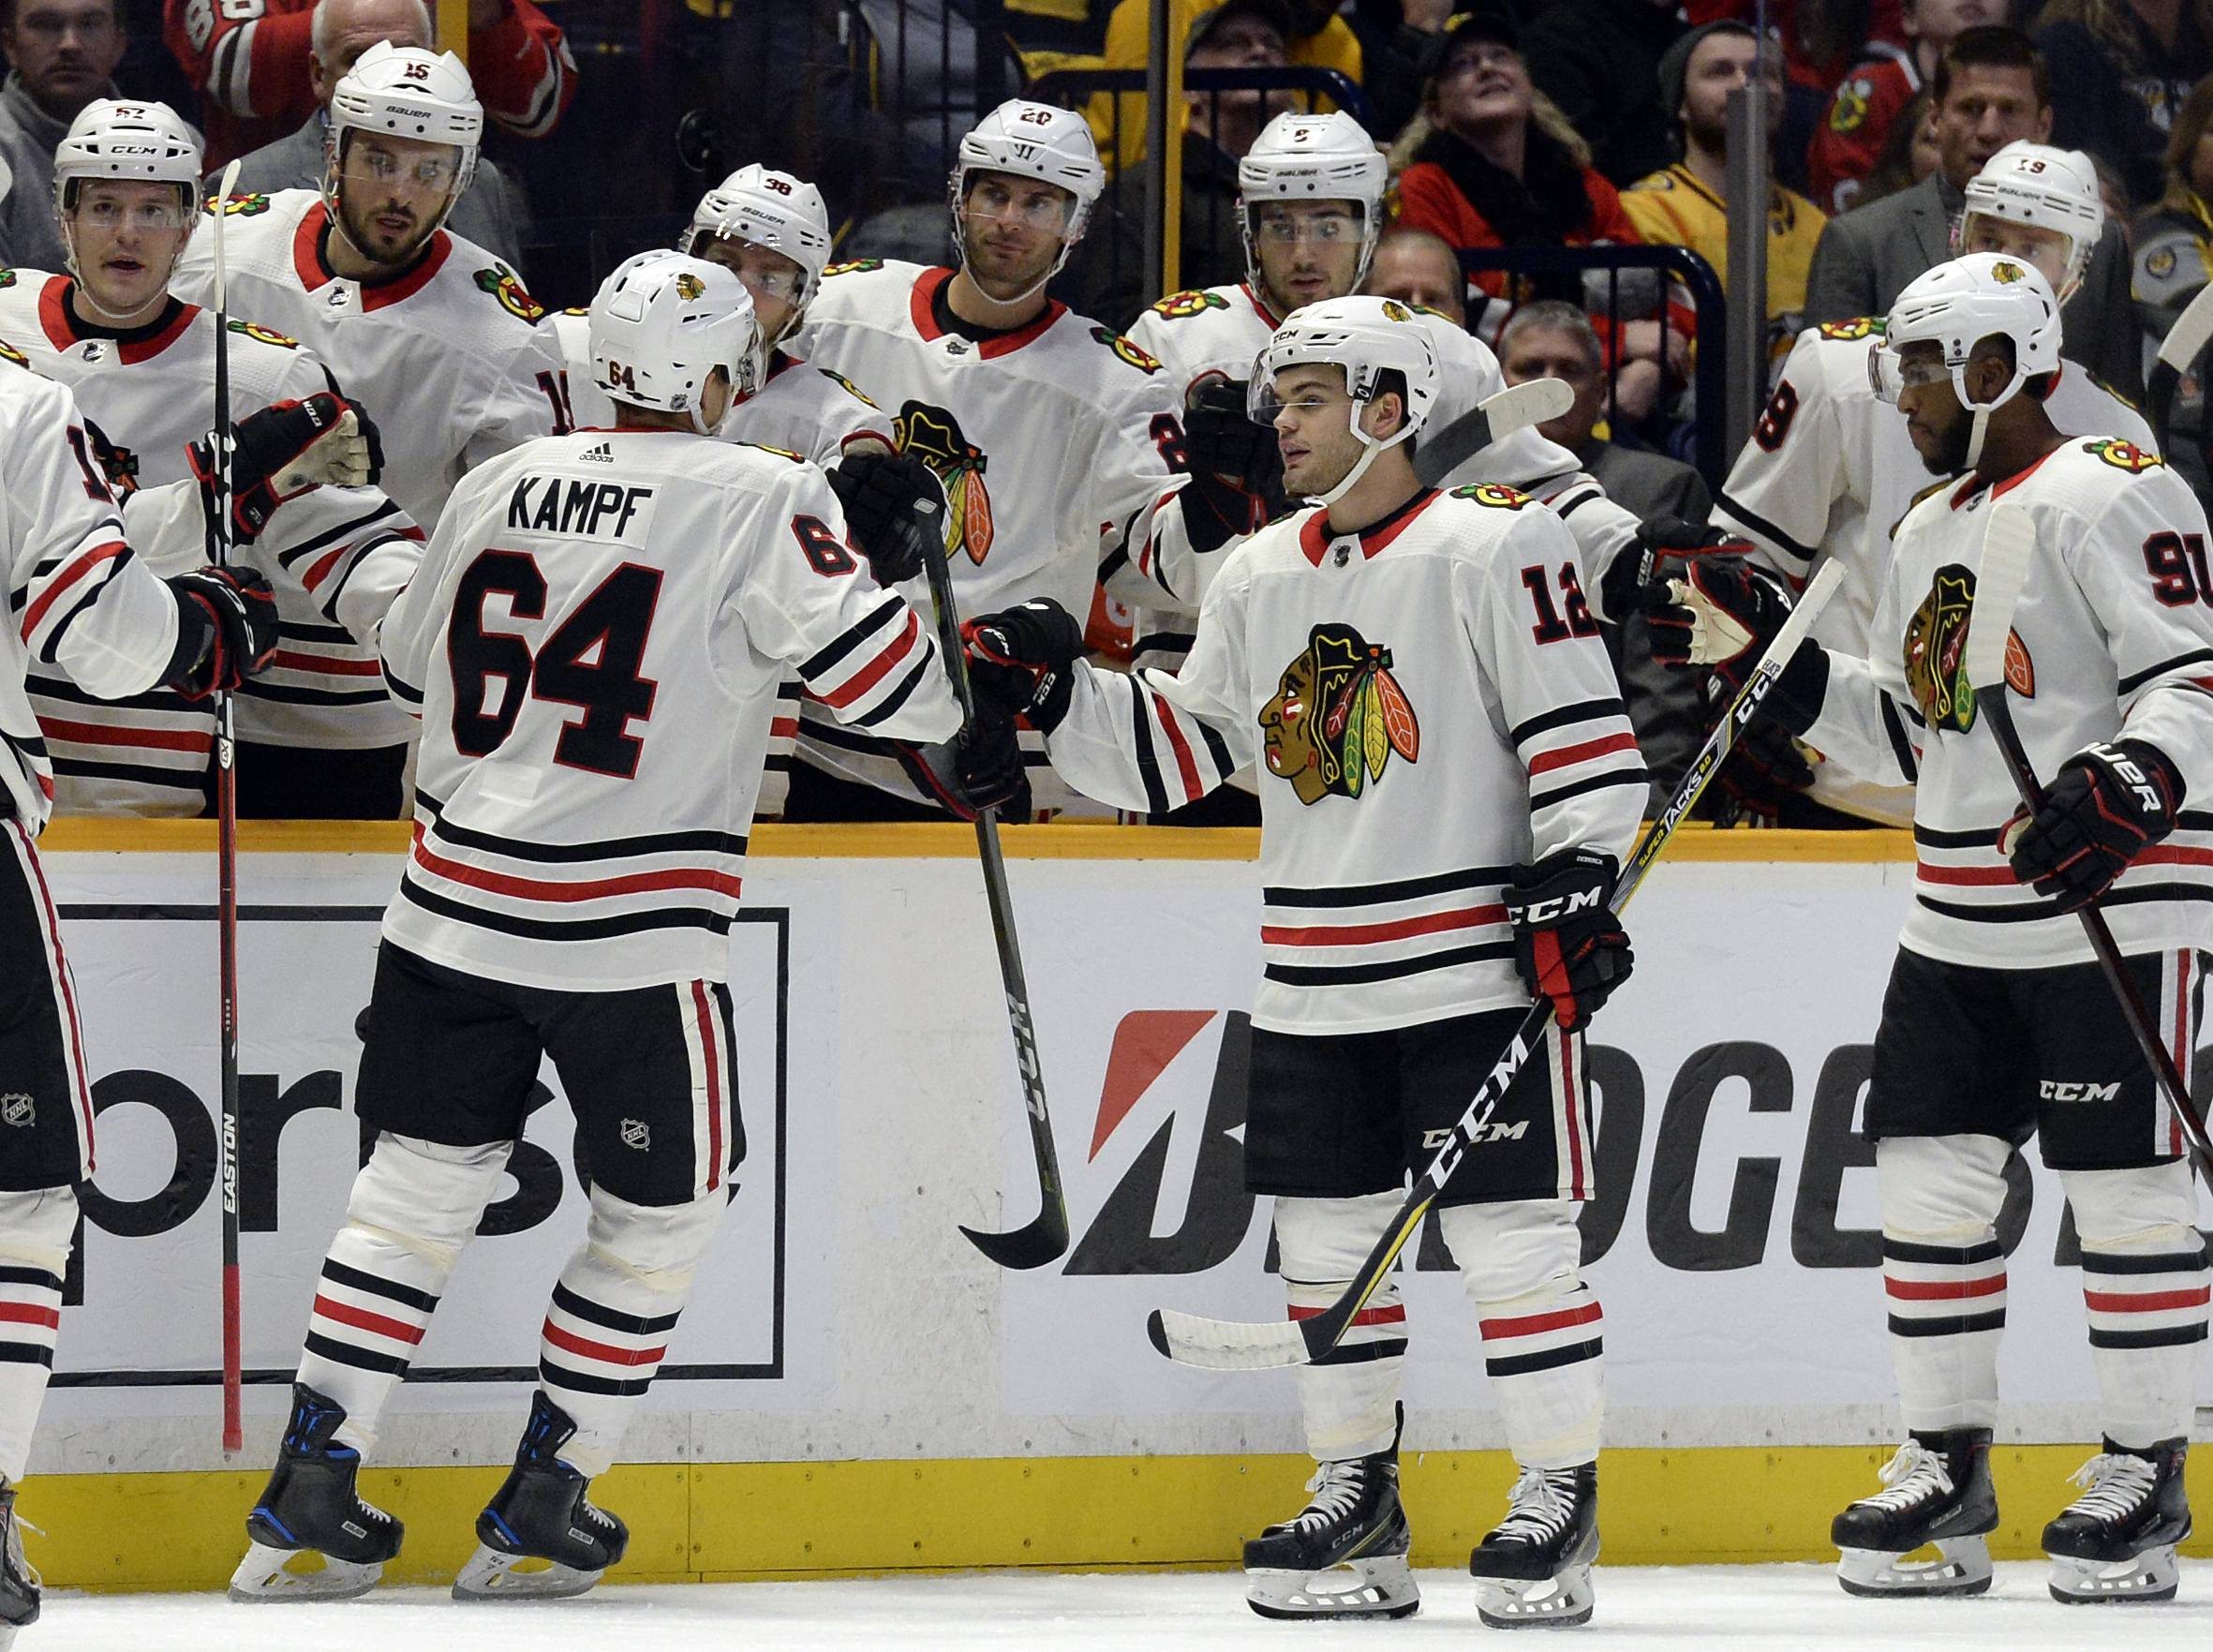 Chicago Blackhawks center David Kampf (64), of Czech Republic, is congratulated after scoring a goal against the Nashville Predators during the first period of an NHL hockey game Tuesday, Jan. 30, 2018, in Nashville, Tenn.